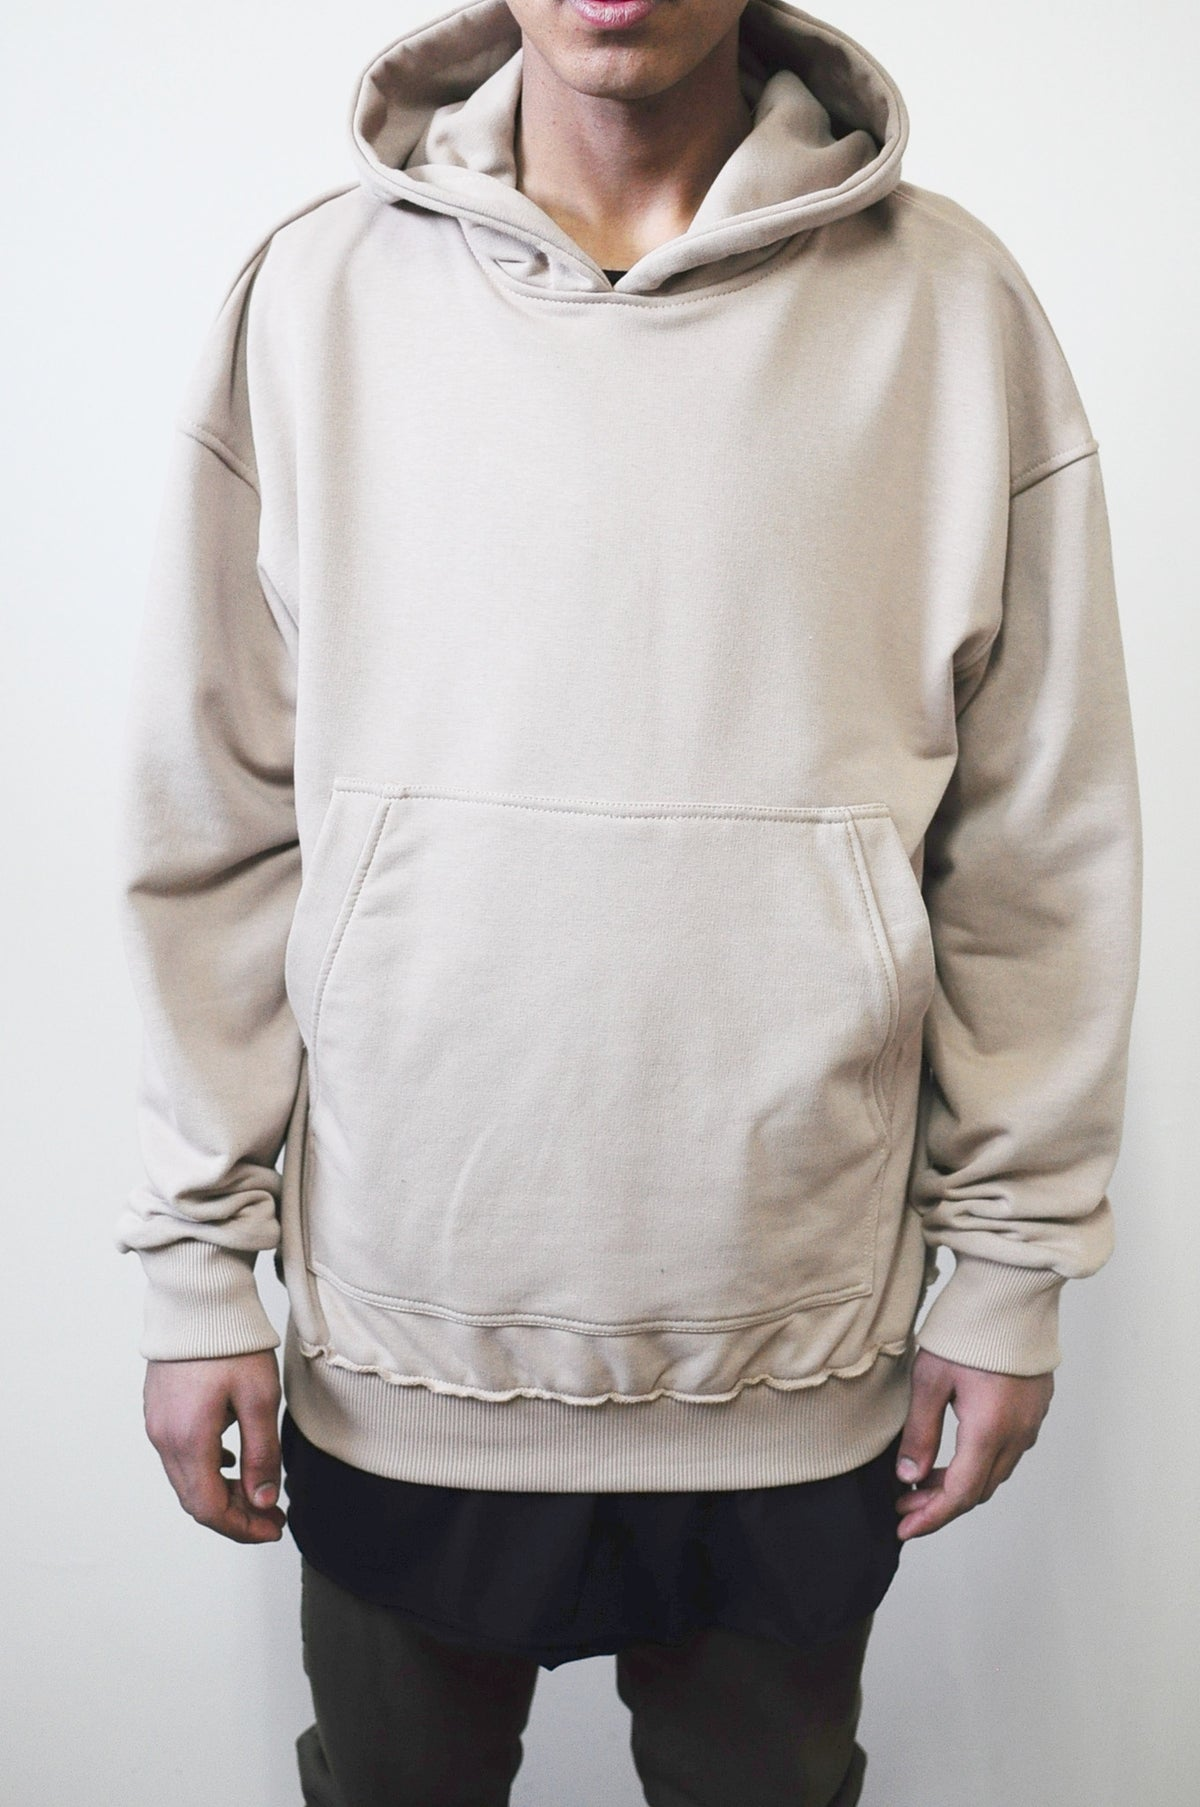 80 's Pullover Hoodie / Oversized Fit / Dropped Shoulder / Rear Neck Badge / Raw Edge Waistband